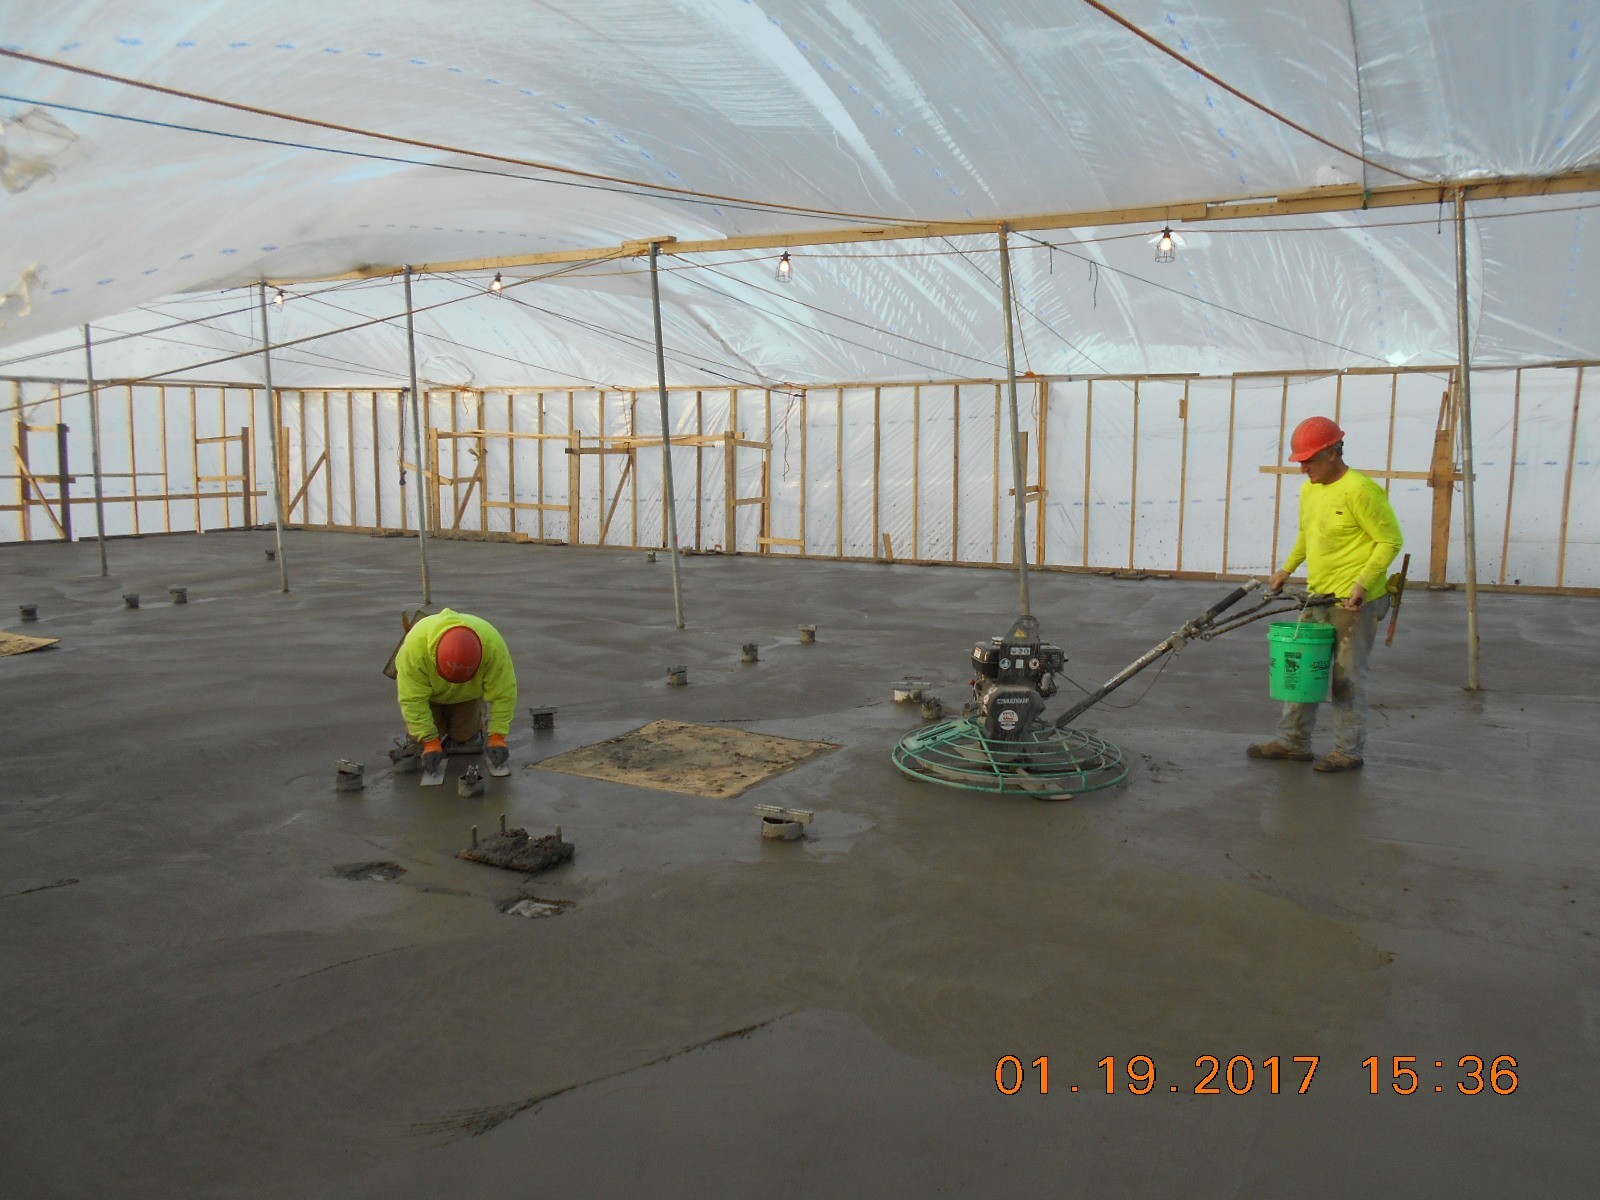 JTJ finishing the concrete surface.